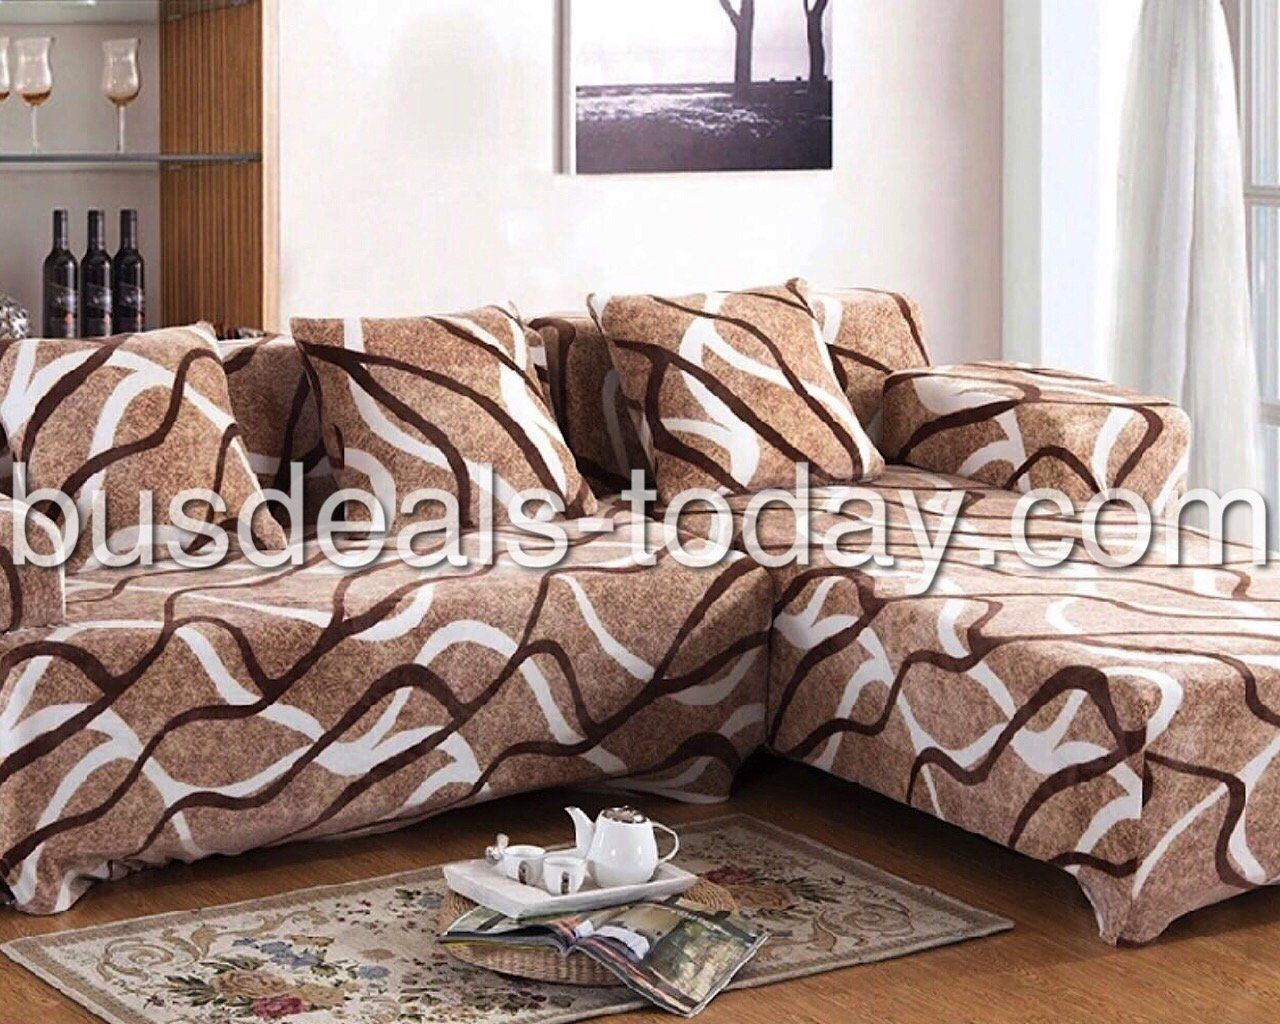 Latest Bed Linen Designs At Unbeatable Prices In Our Online Shop Busdeals Today Com Join Our Group At Facebook Com G Sofa Covers Online Sofa Covers Latest Bed